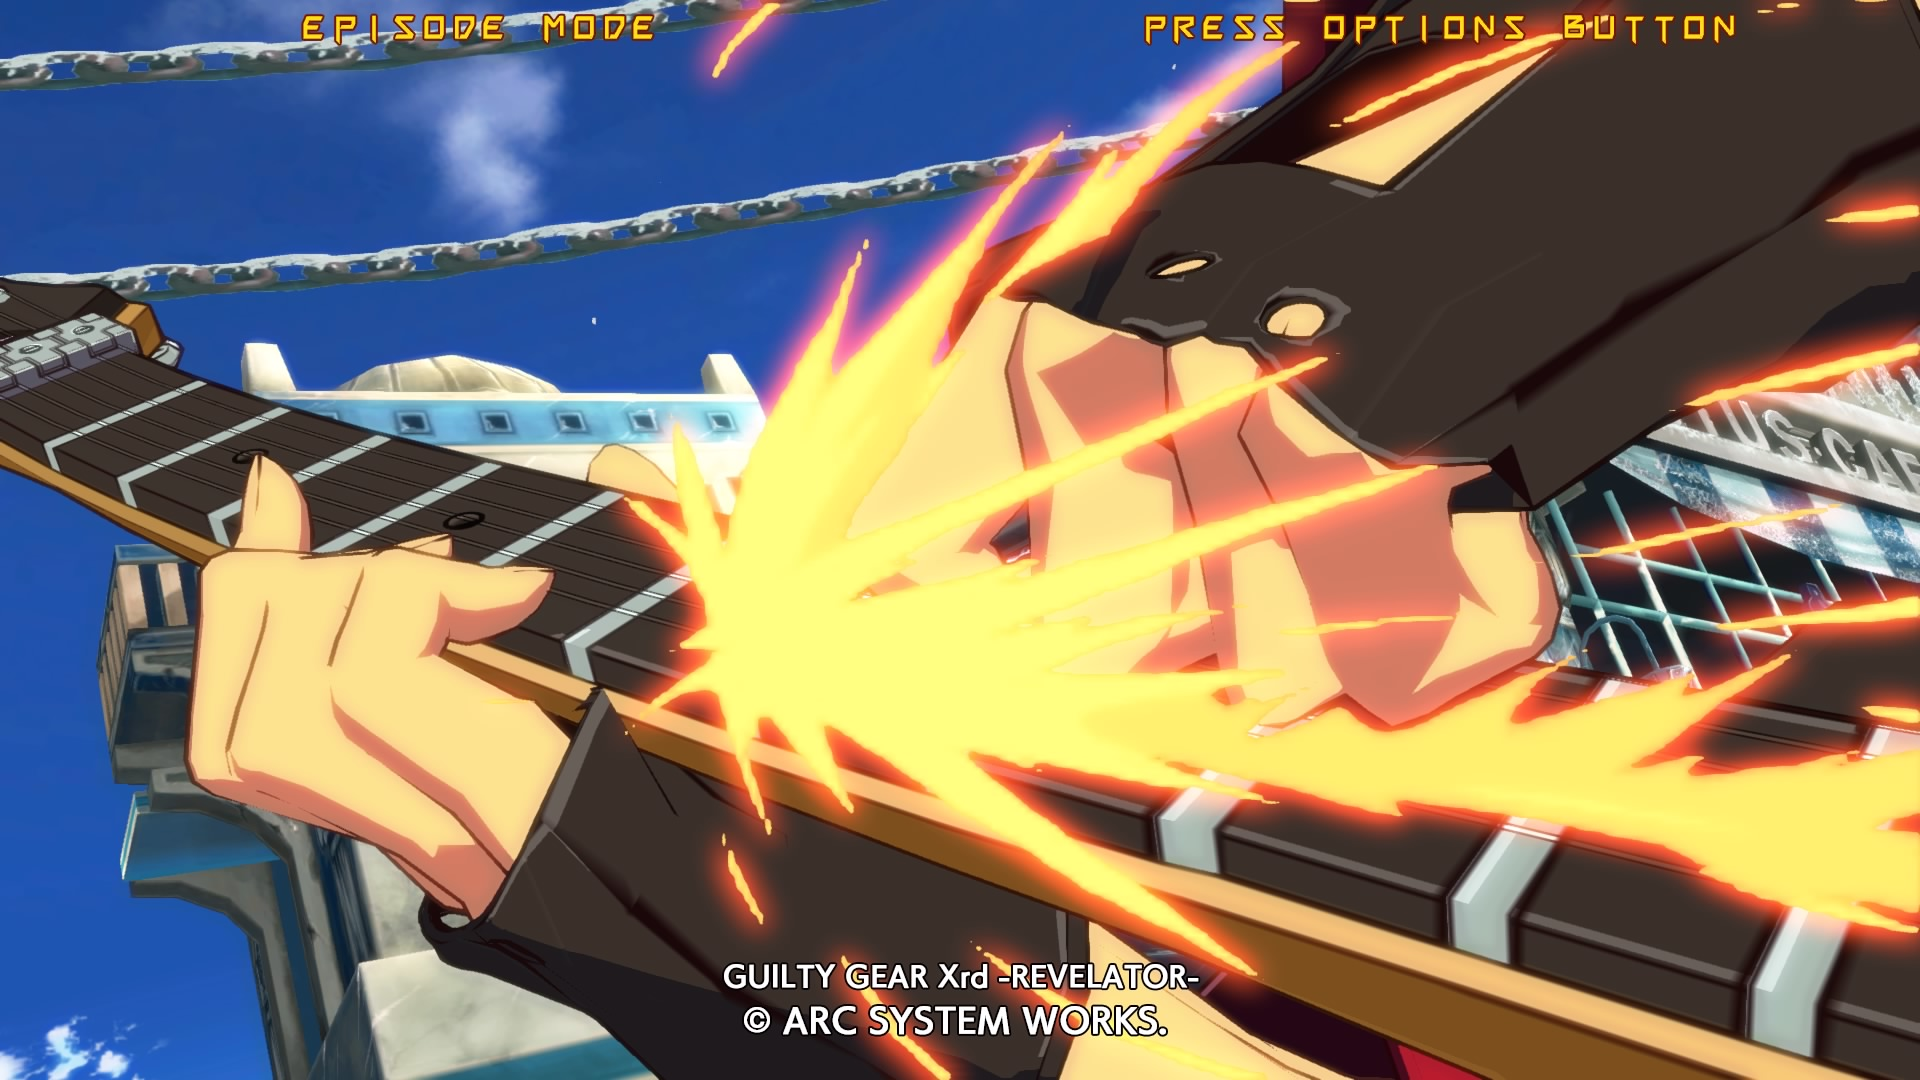 GuiltyGearXrd-Revelator PS4 Test 049